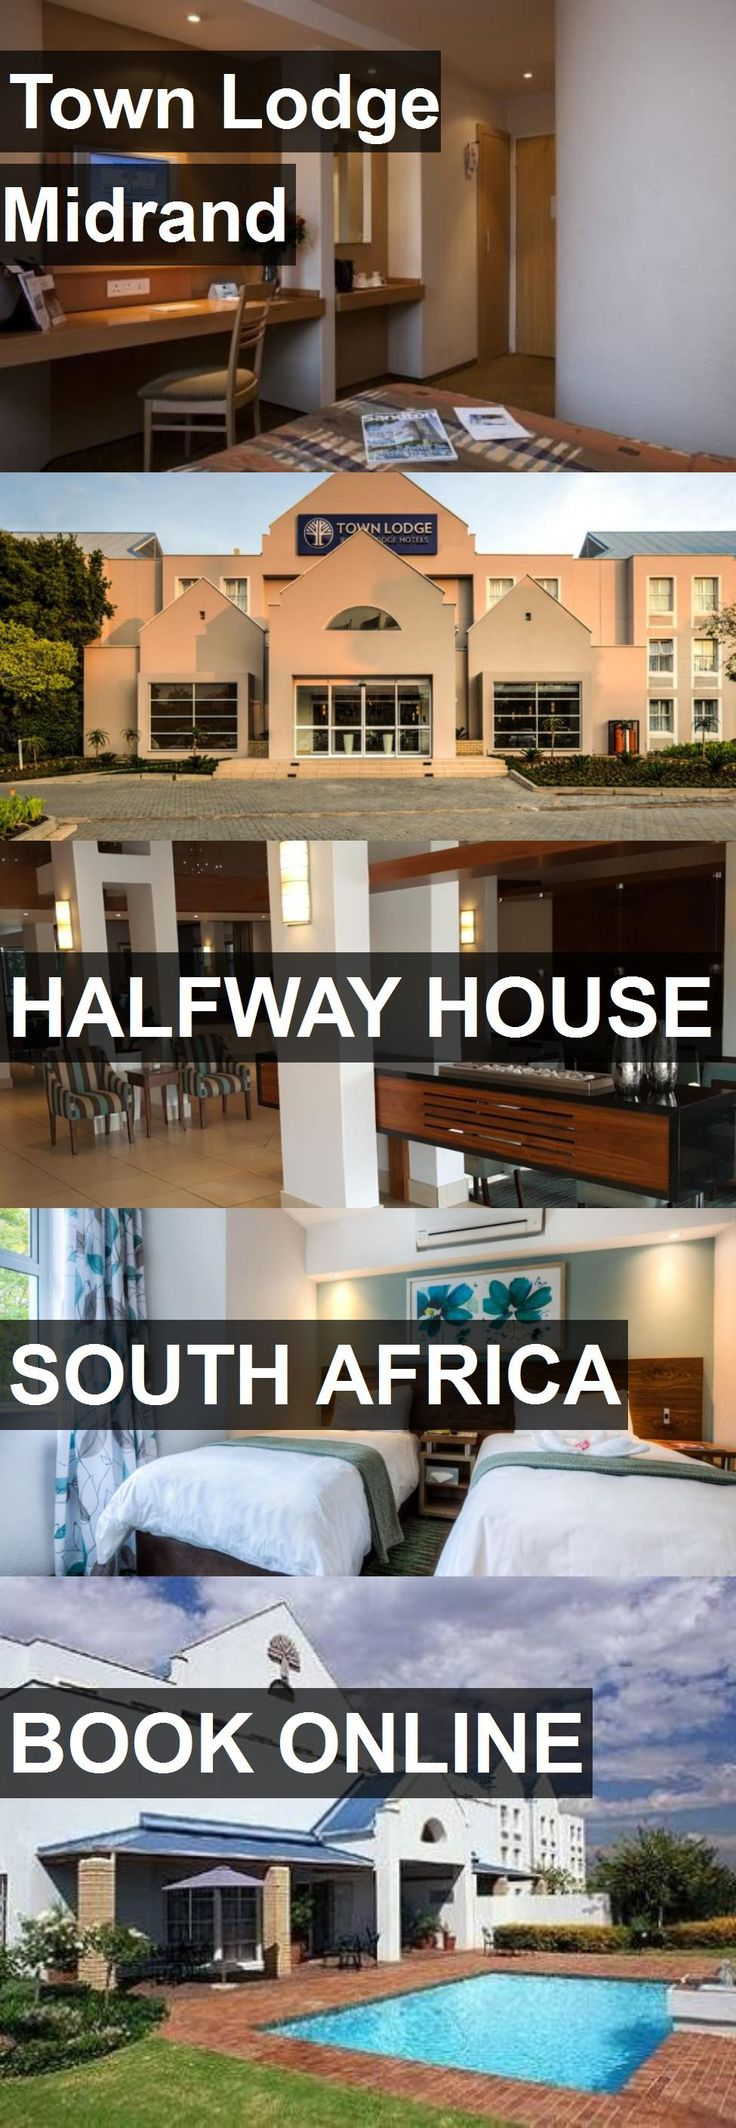 Hotel Town Lodge Midrand in Halfway House, South Africa. For more information, photos, reviews and best prices please follow the link. #SouthAfrica #HalfwayHouse #travel #vacation #hotel